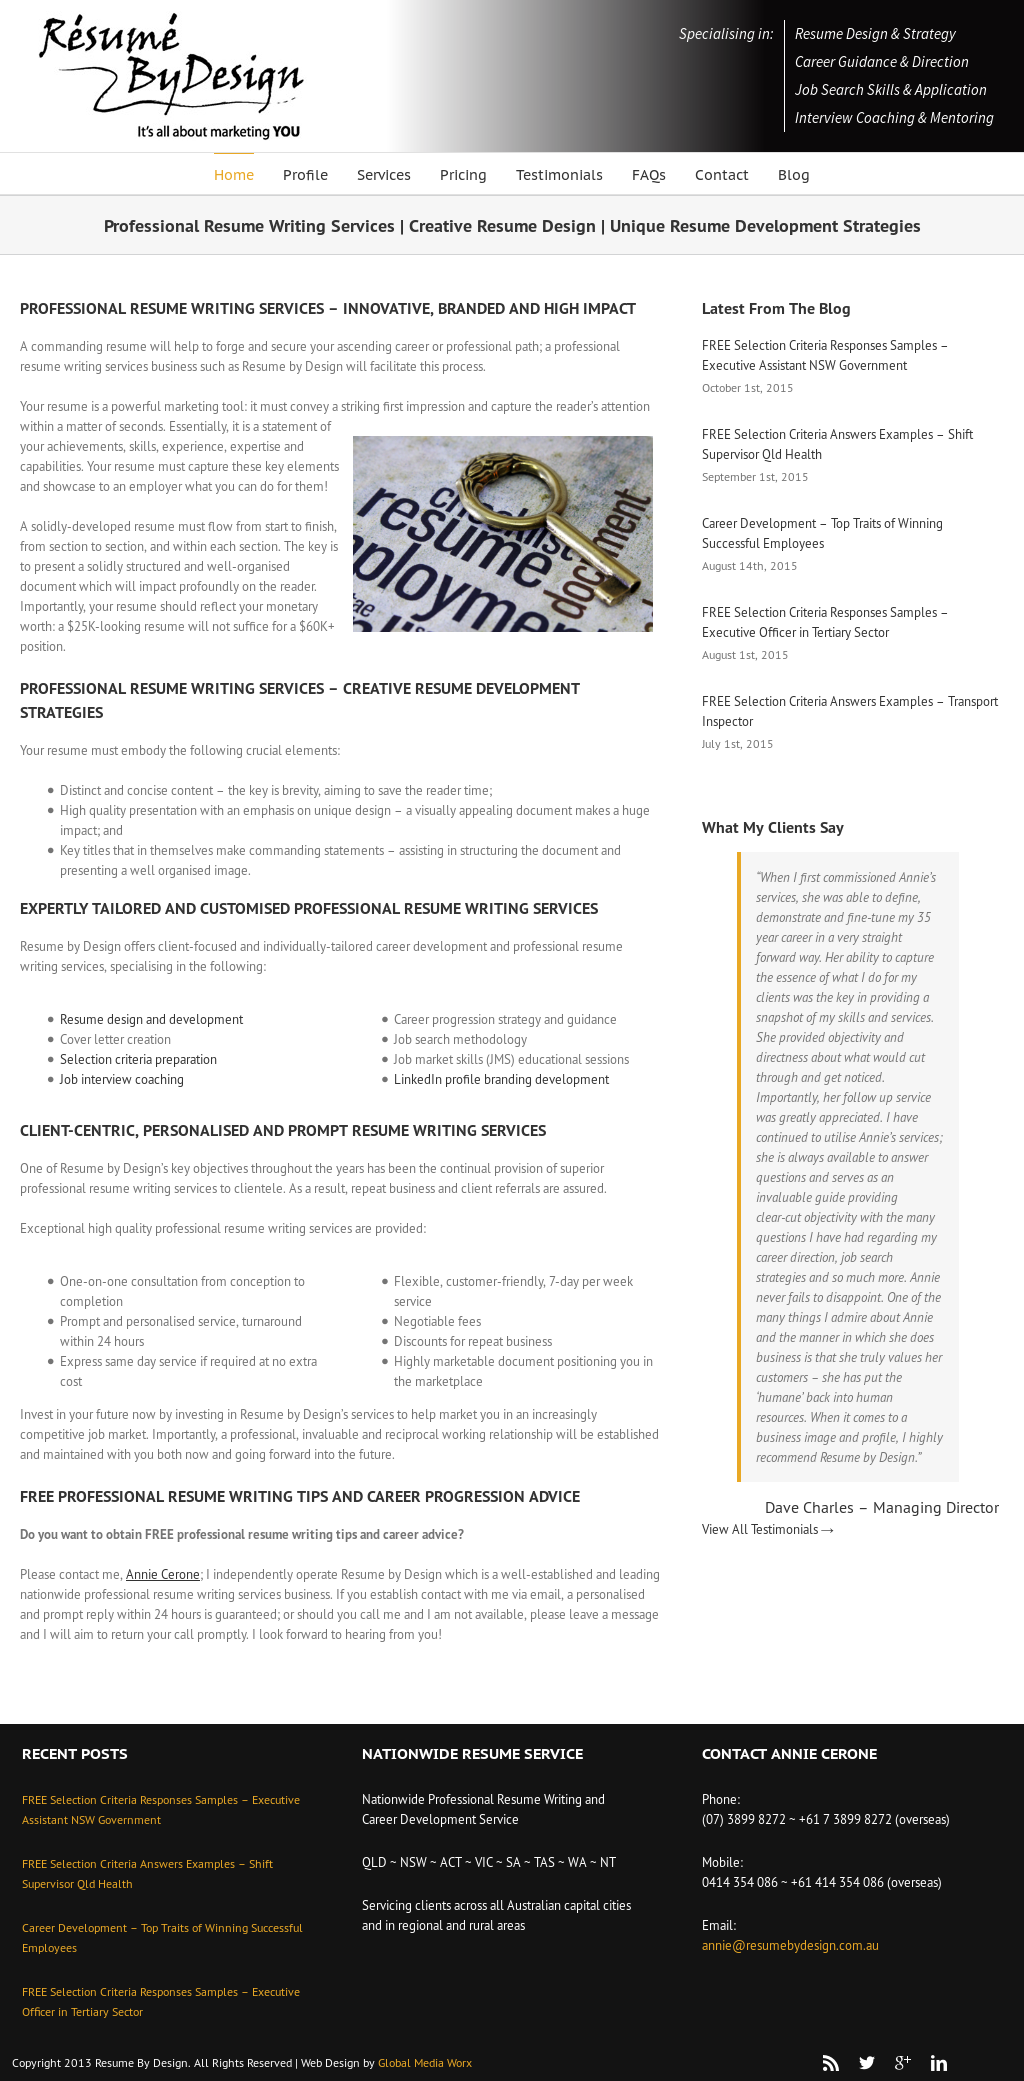 Resume By Design Competitors, Revenue and Employees - Owler Company ...